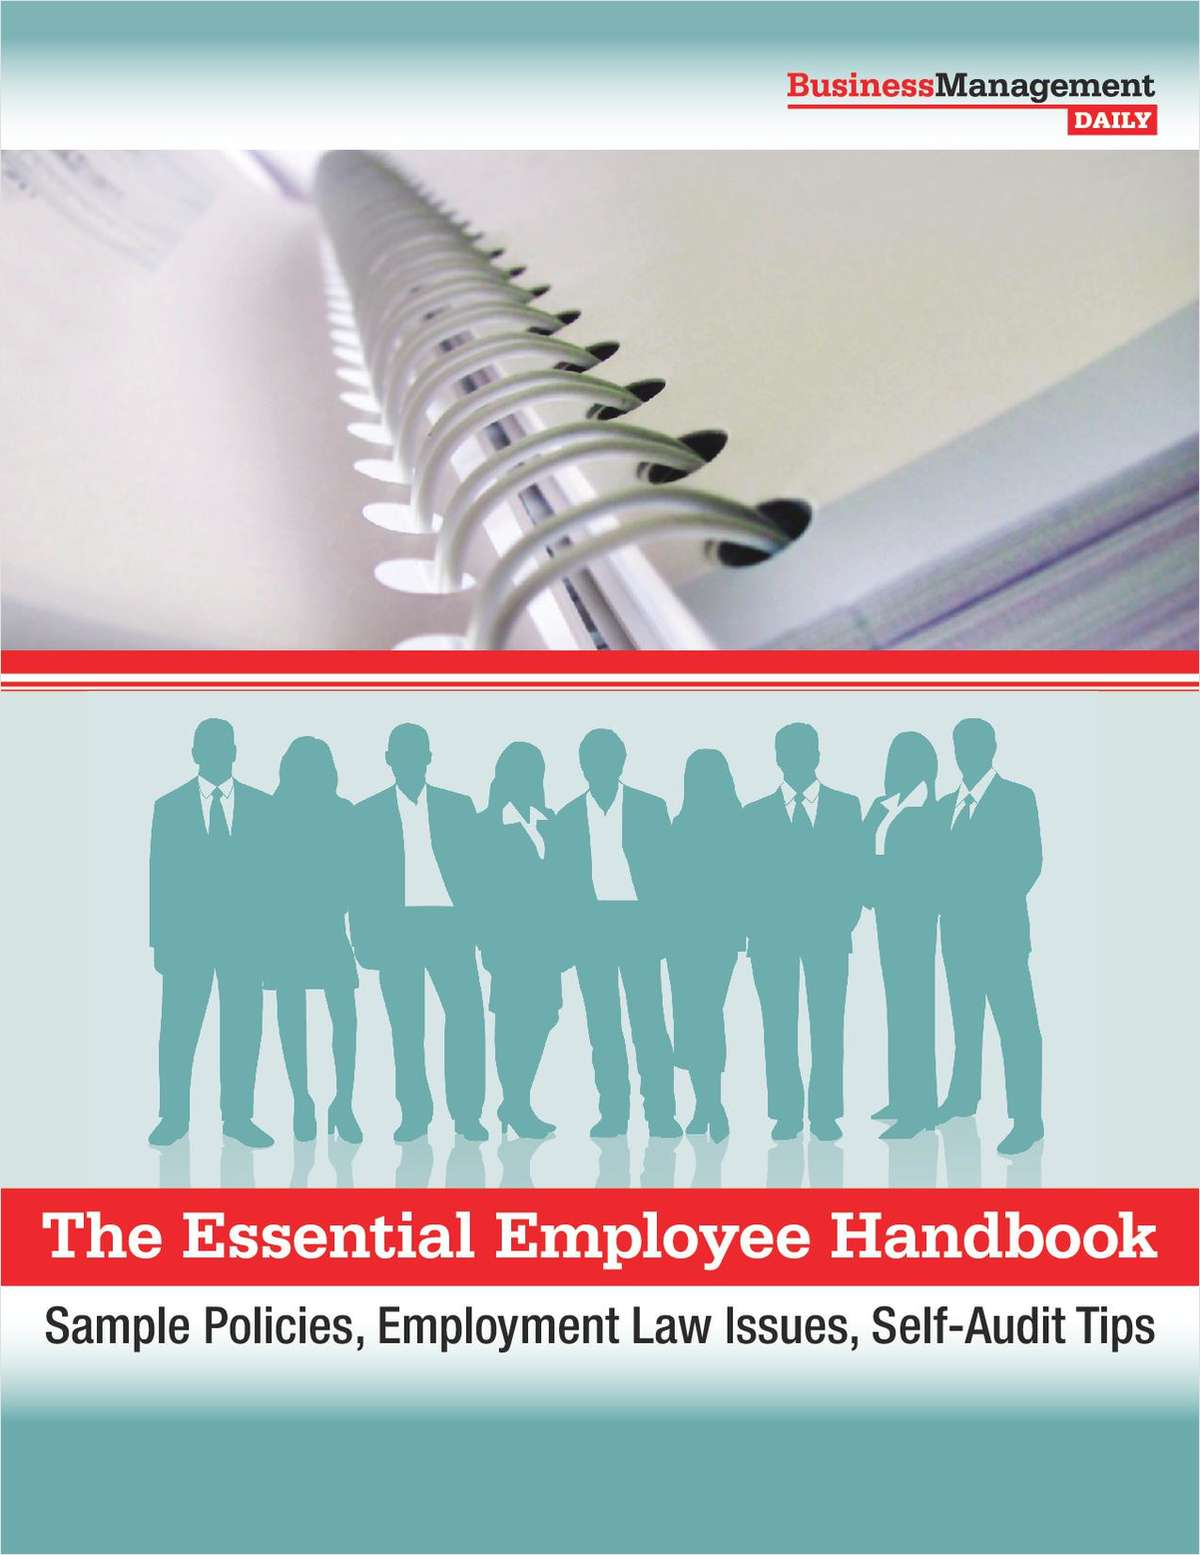 The Essential Employee Handbook